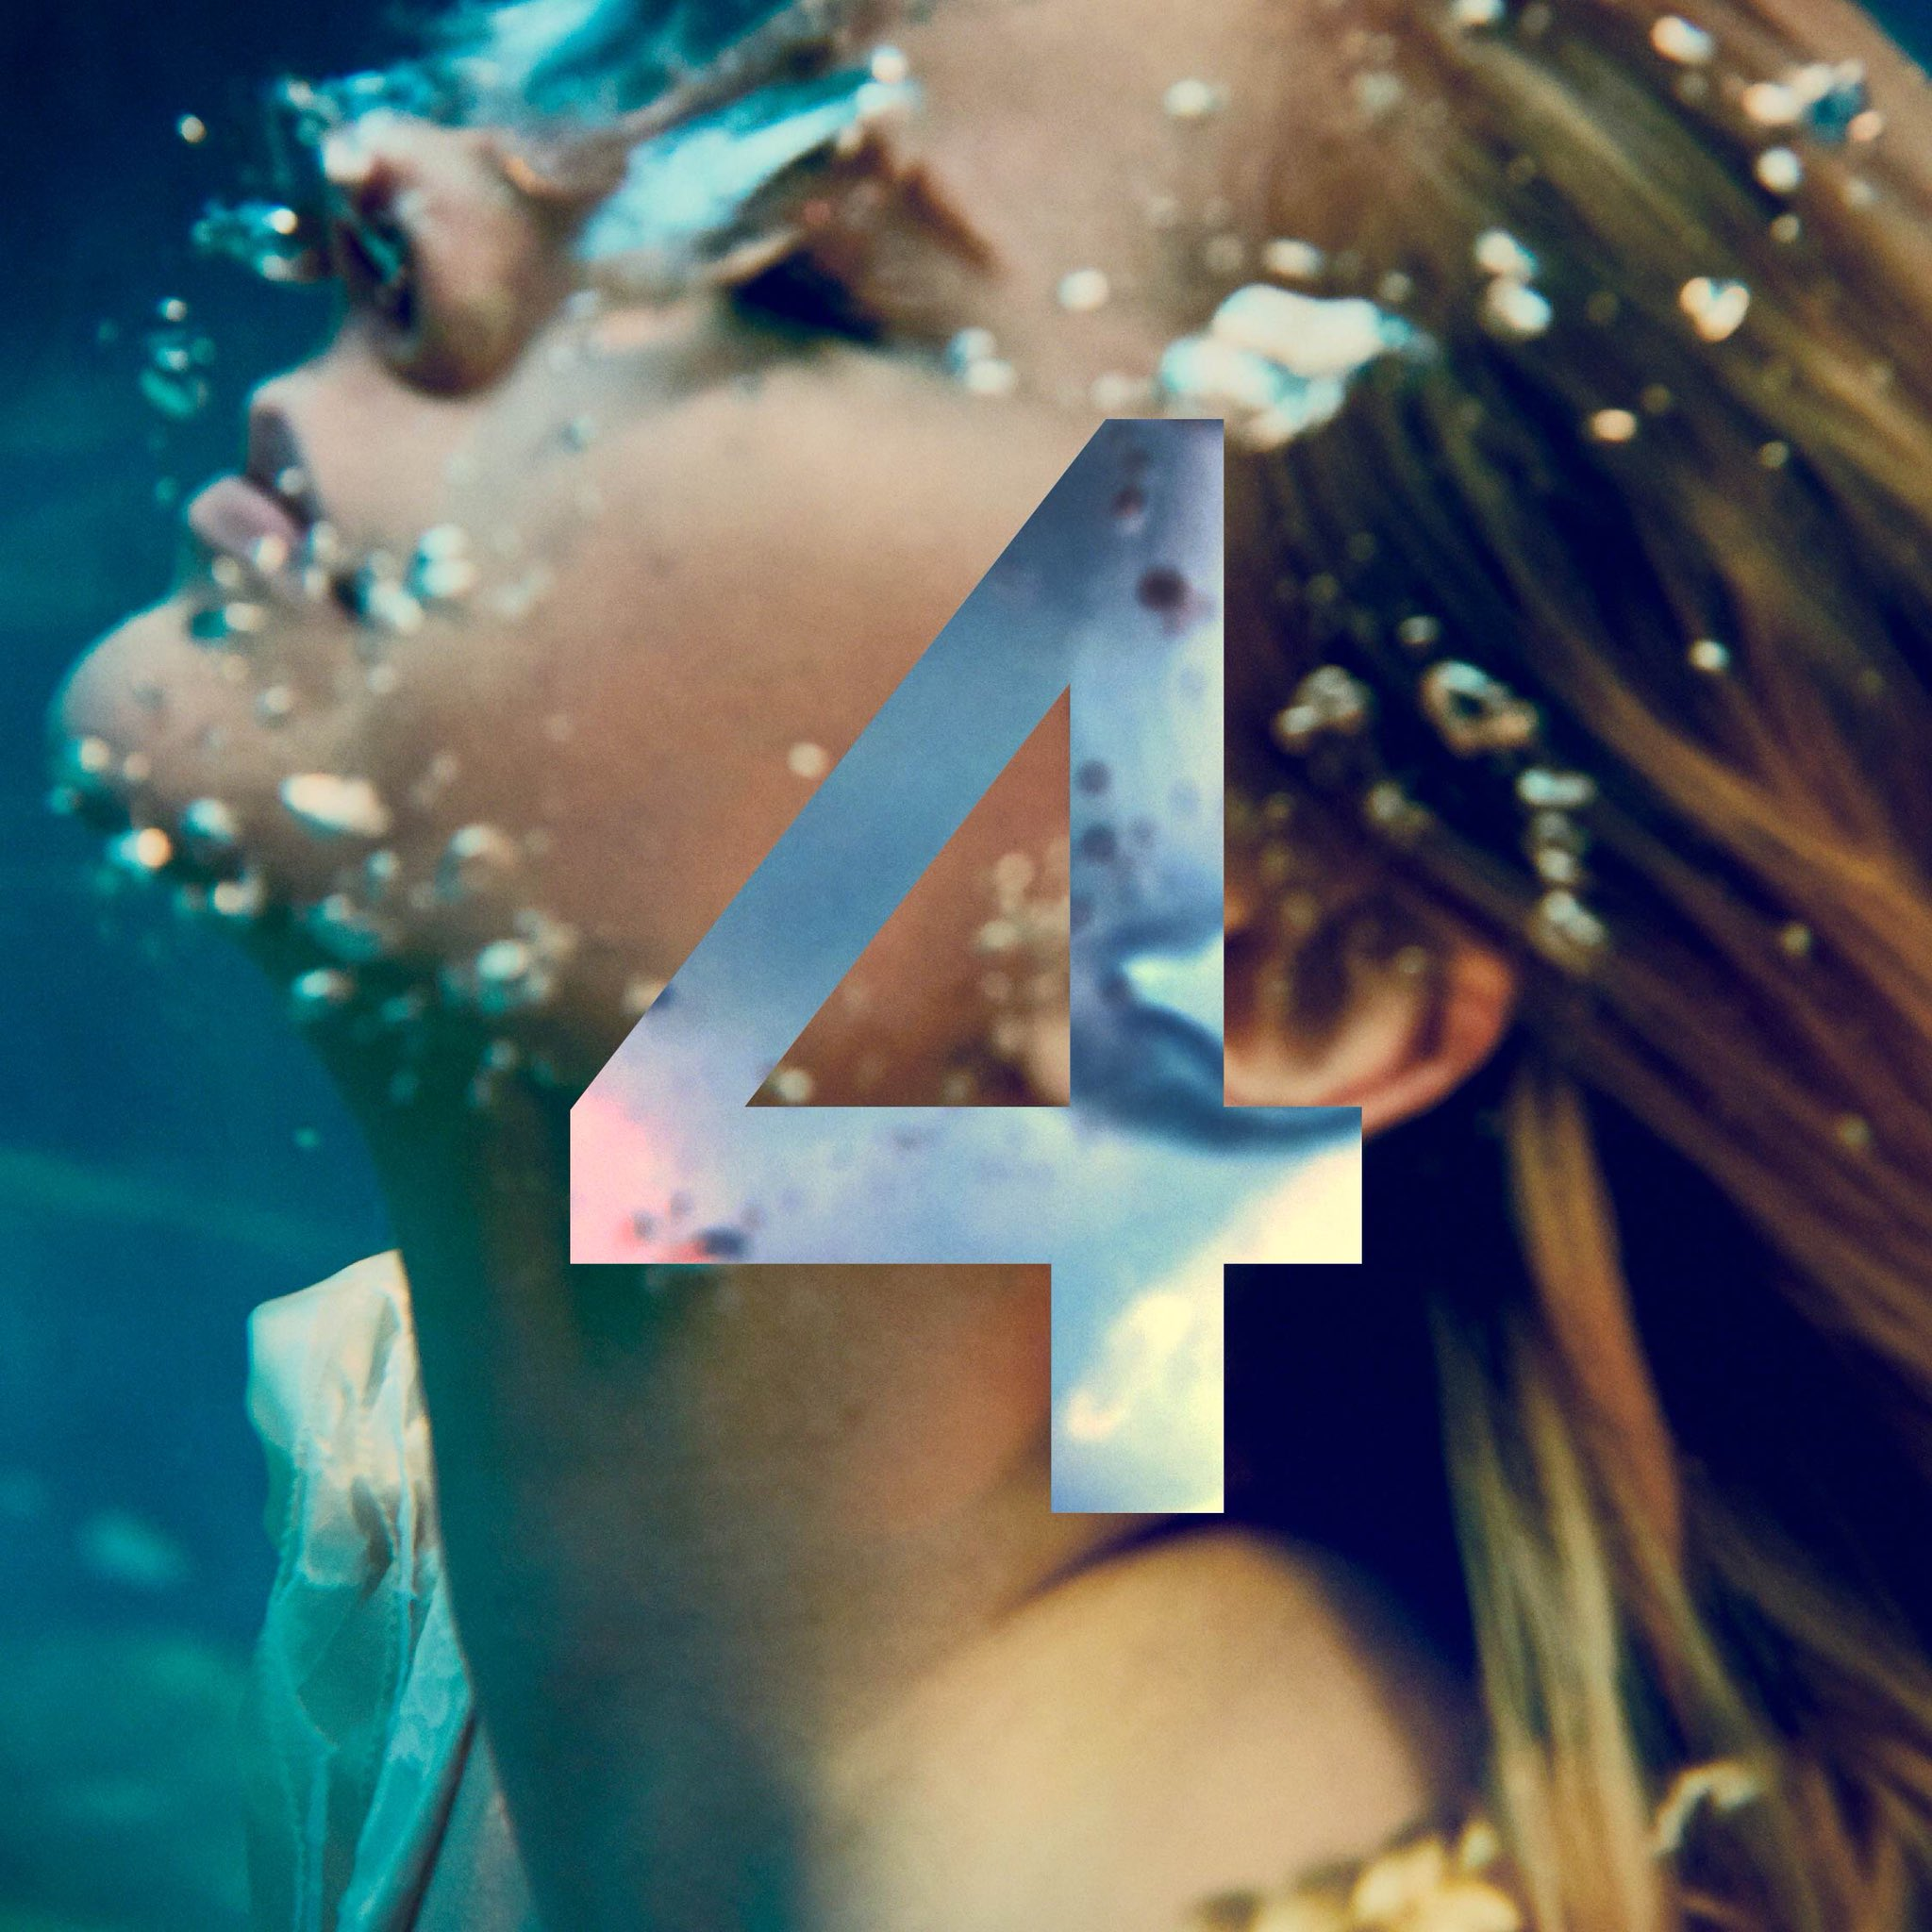 Four days until #HeadAboveWater �� https://t.co/RLus6kydXf